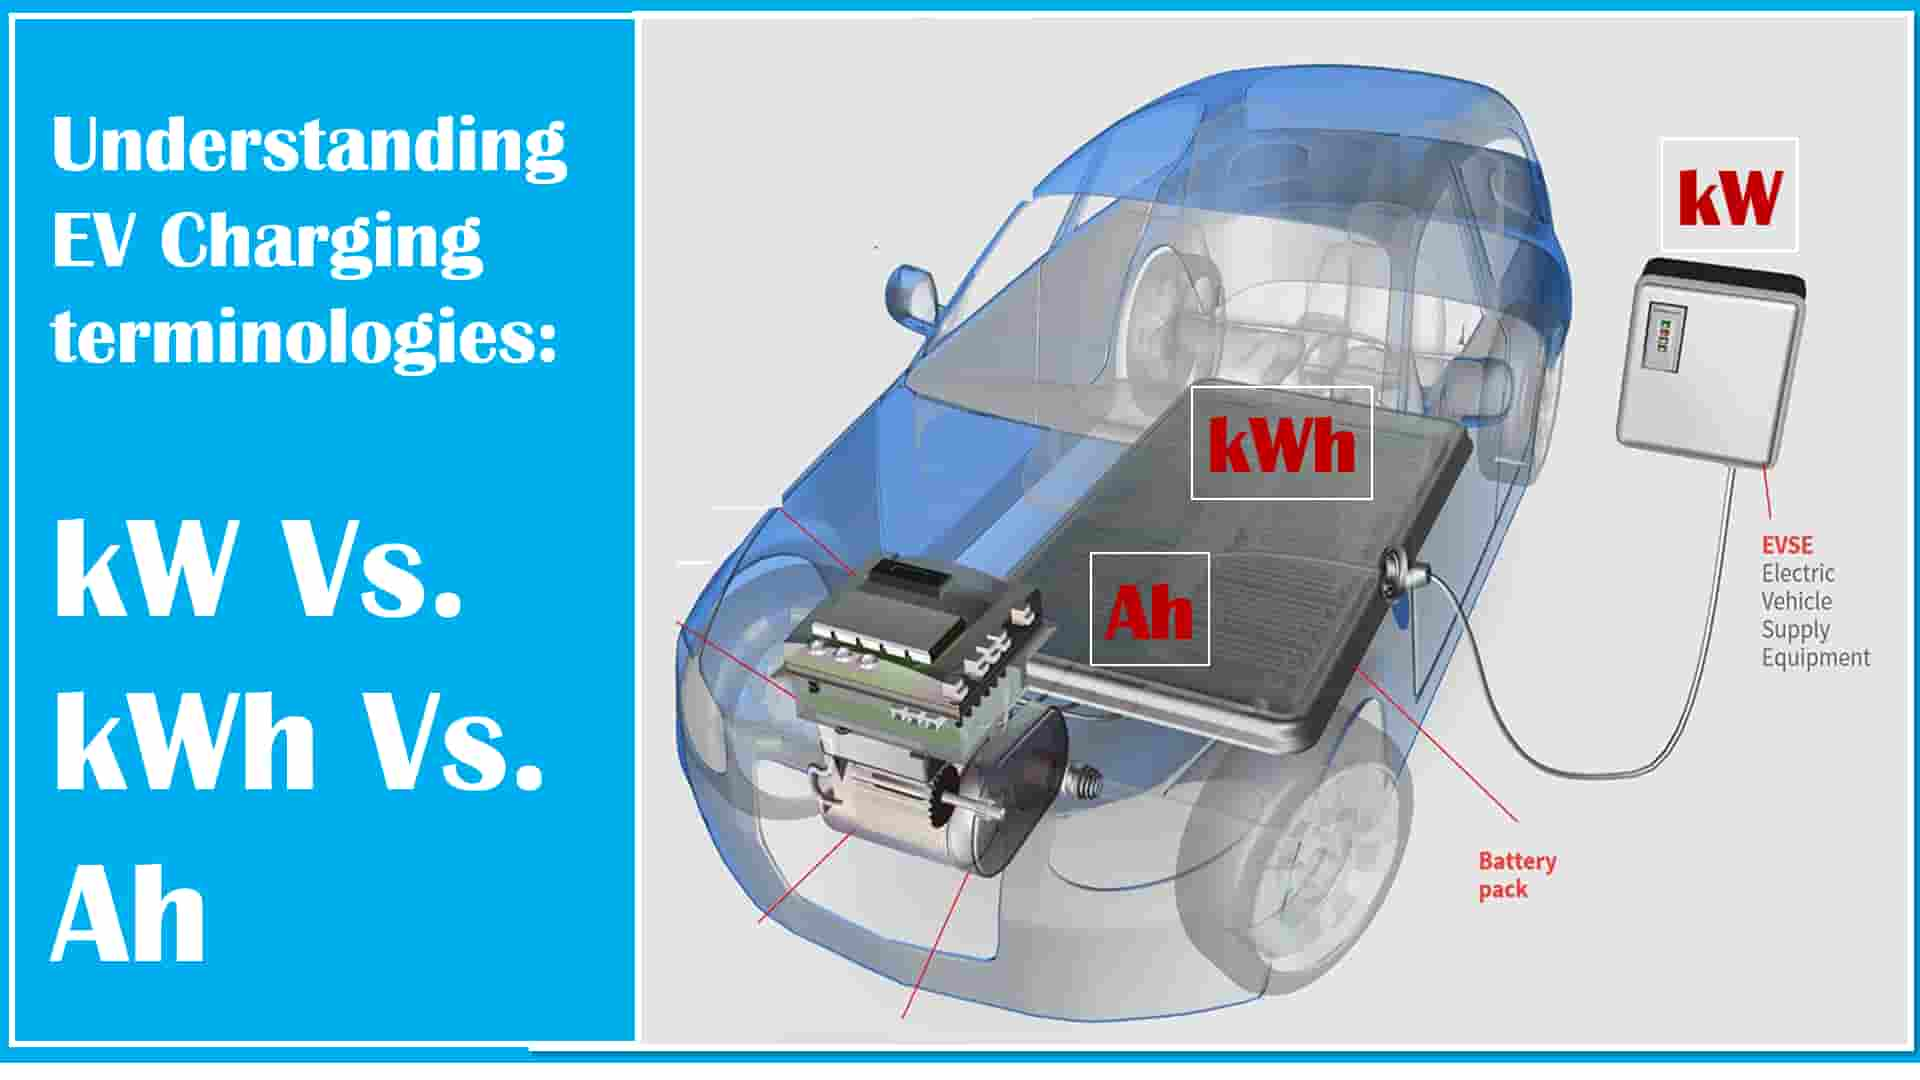 Understanding differences between kW, kWh & Ah from EV charging perspective